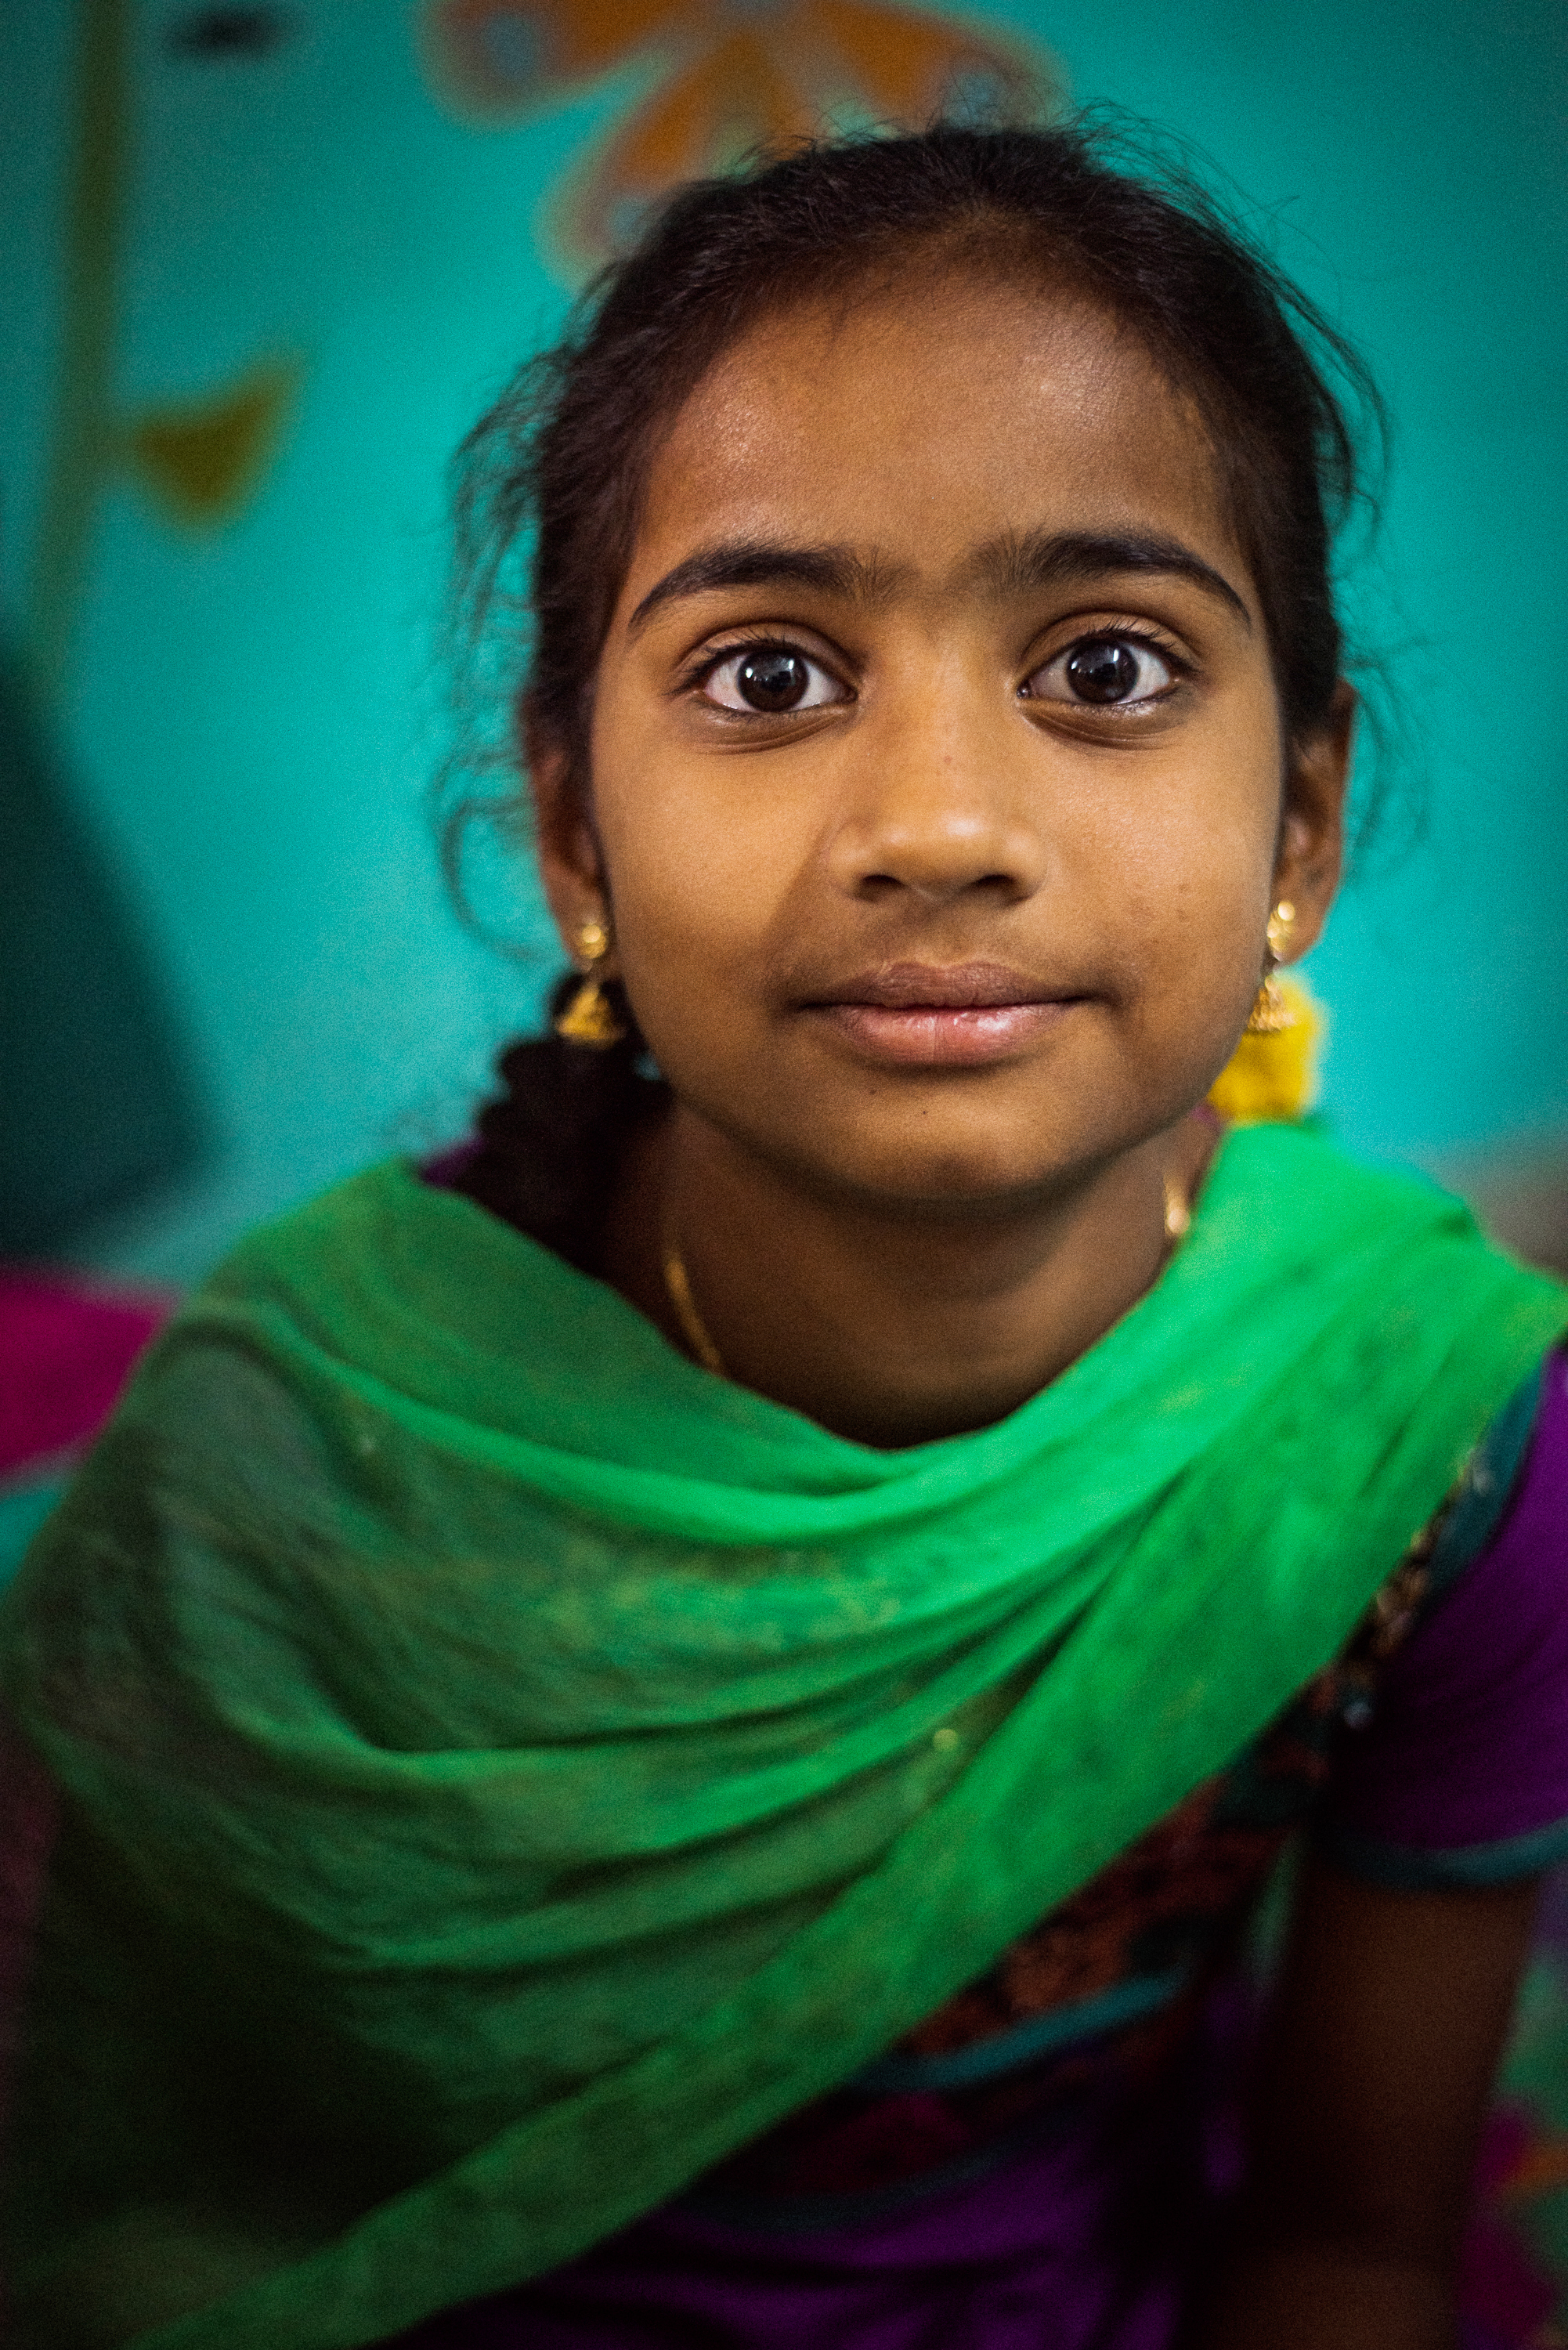 INDIA_HUMANITARIAN_WORK_TARASHUPE_PHOTOGRAPHY_002.jpg